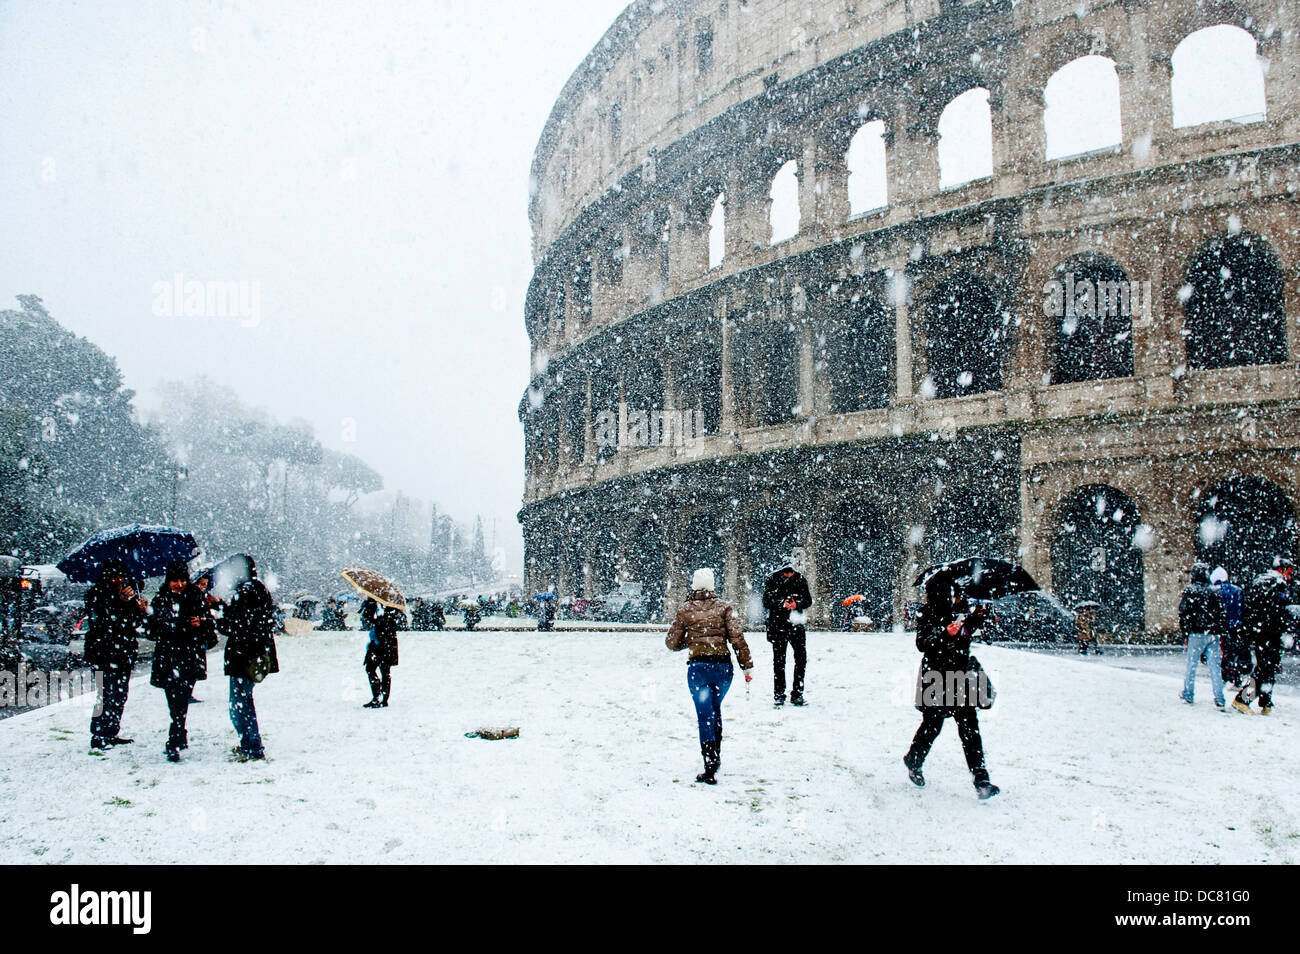 The Colosseum Covered In Snow Rome Italy Stock Photo Royalty - Italy in the winter